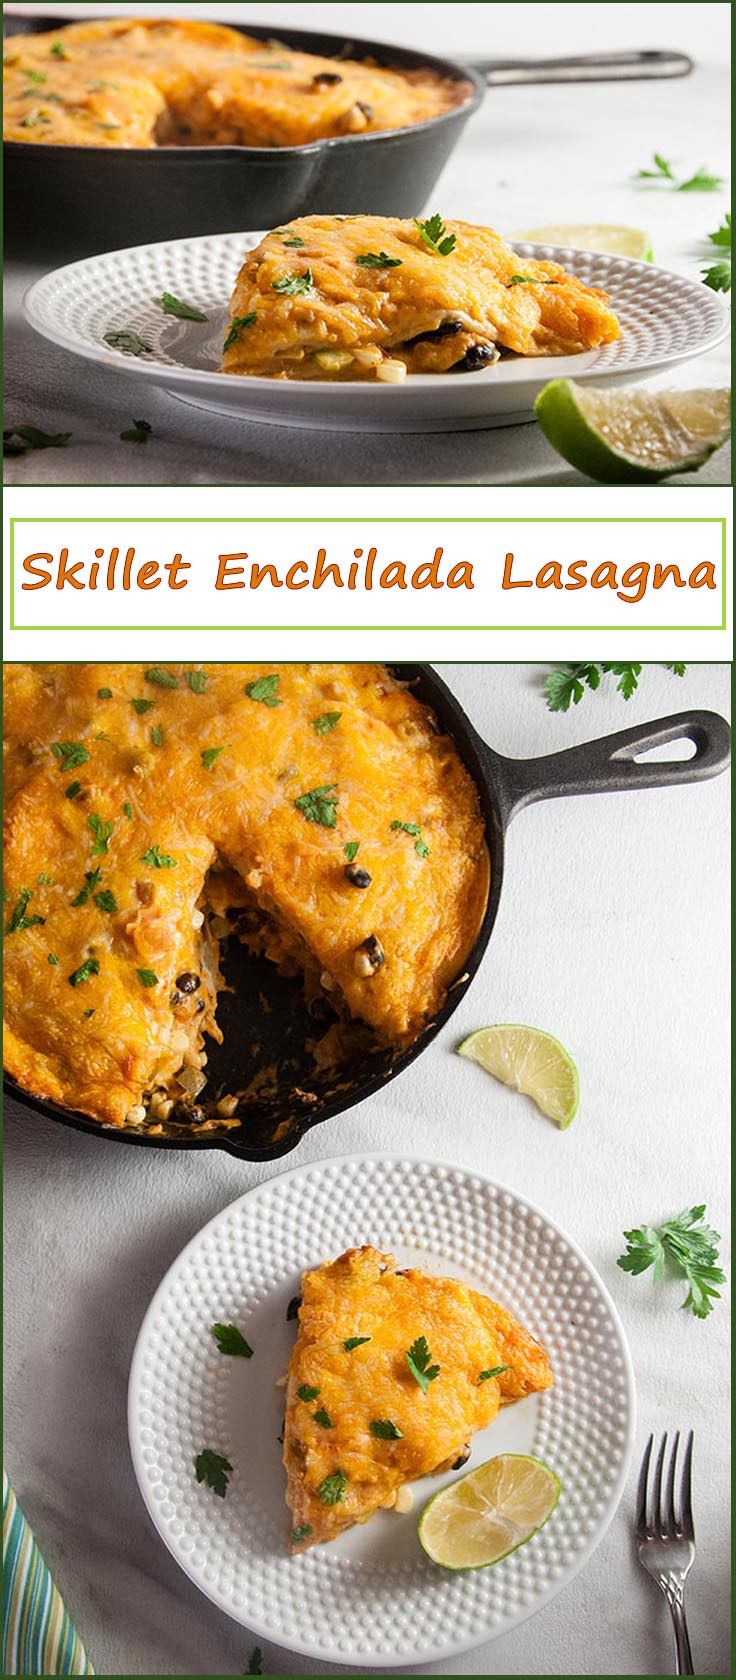 Shortcut Skillet Enchilada Lasagna from www.SeasonedSprinkles.com